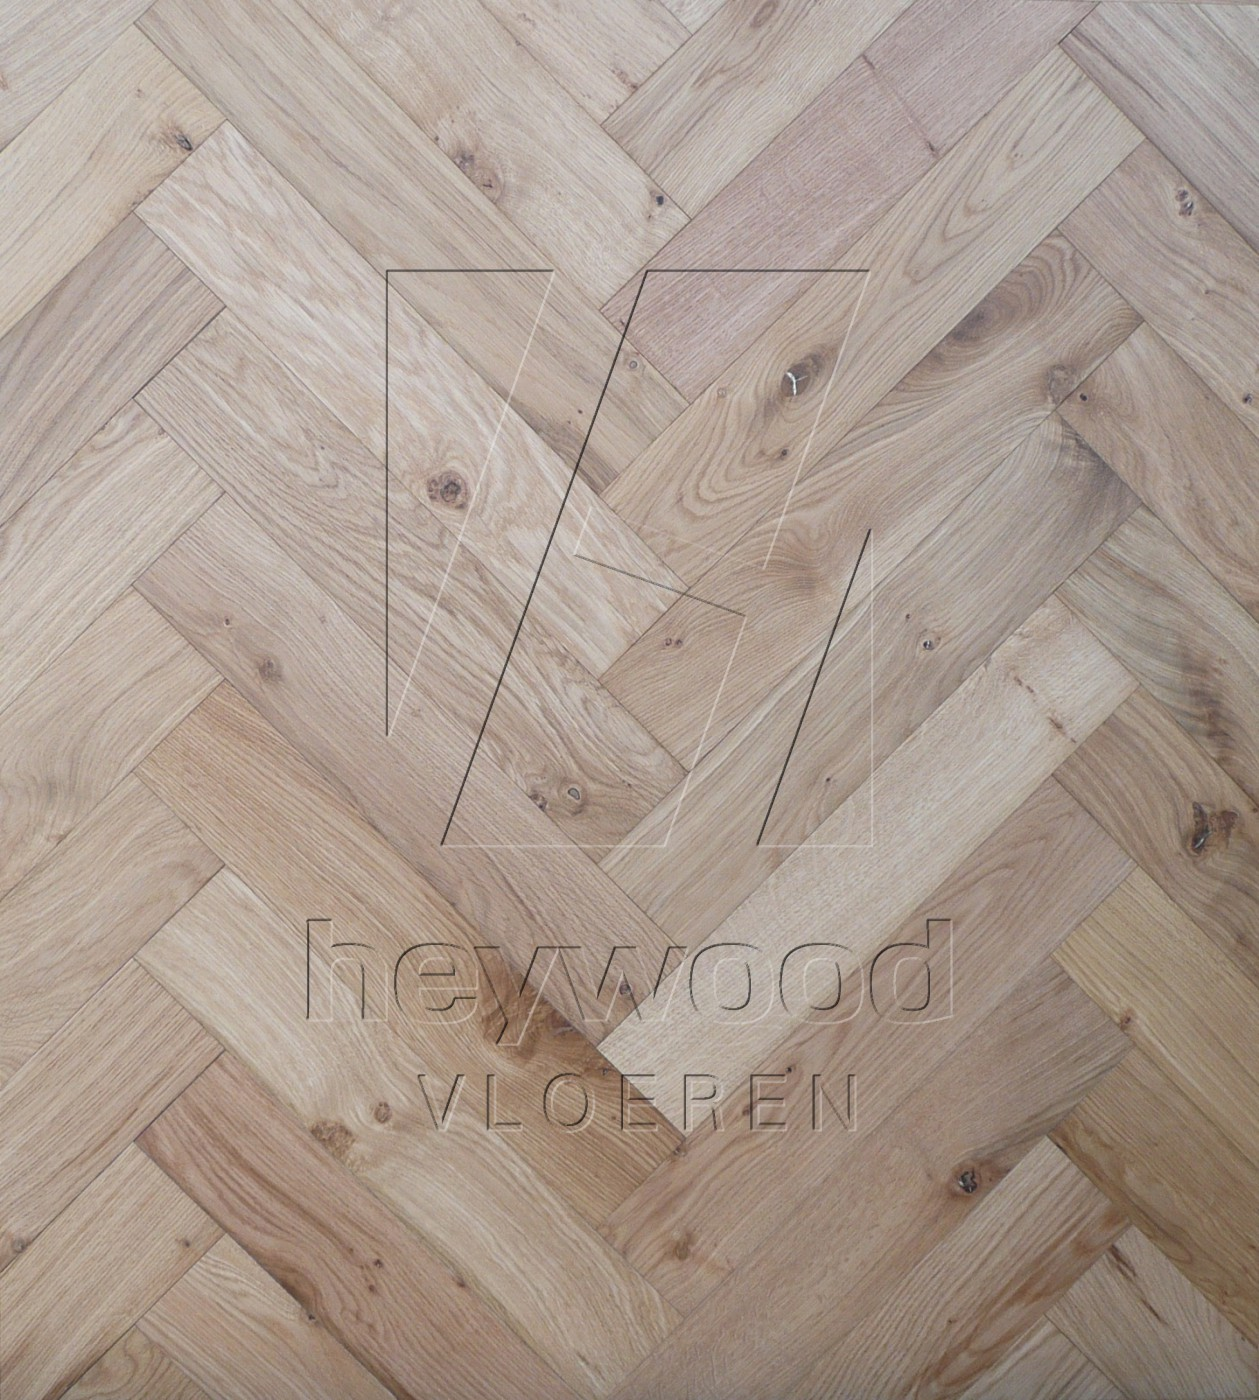 Herringbone Oak Rustic-A Osmo oiled in Herringbone of Pattern & Panel Floors